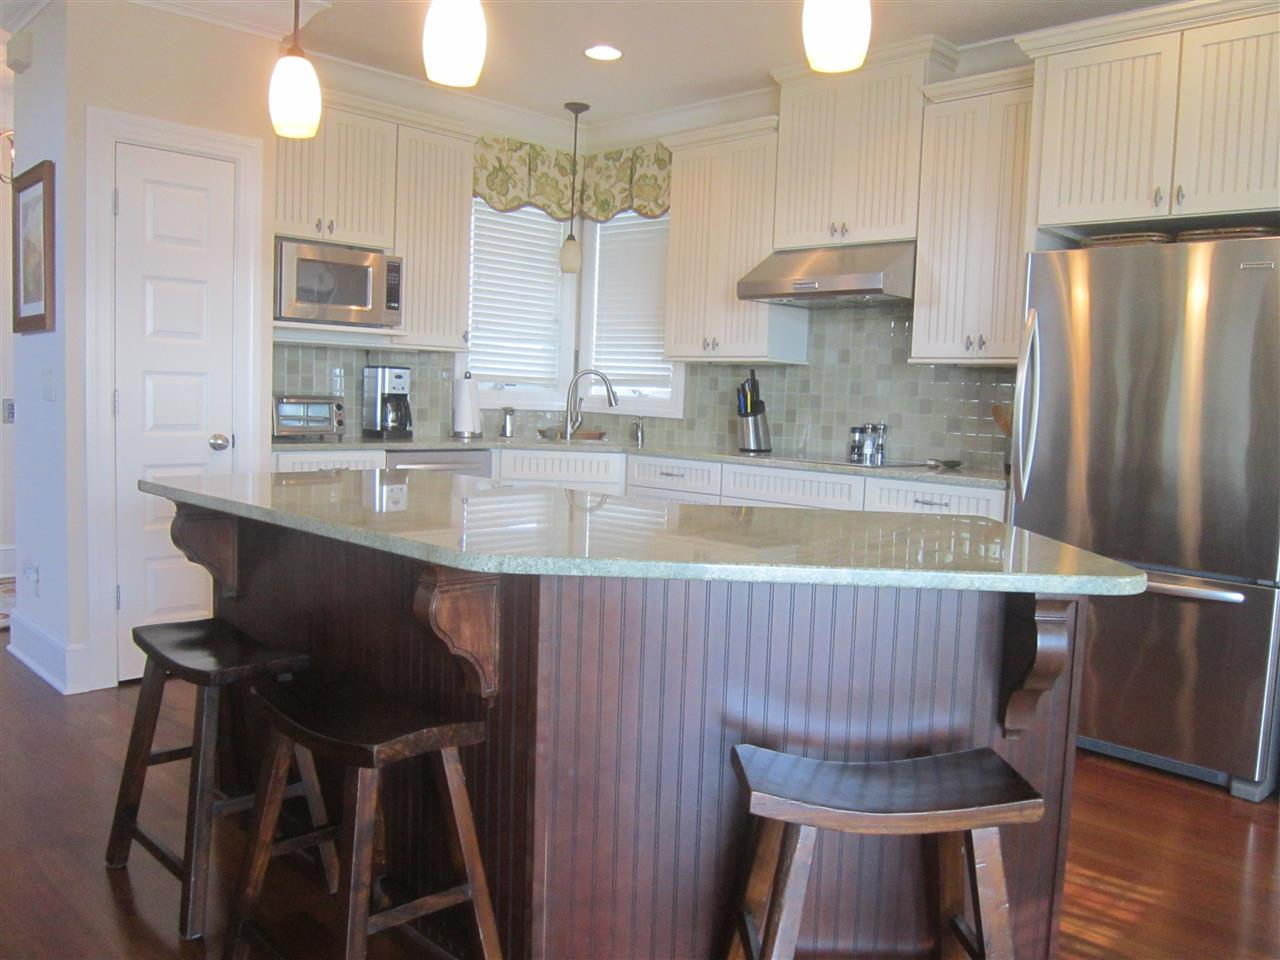 14 Rudder Court, Manteo, NC 27954, 4 Bedrooms Bedrooms, ,4 BathroomsBathrooms,Residential,For sale,Rudder Court,89465